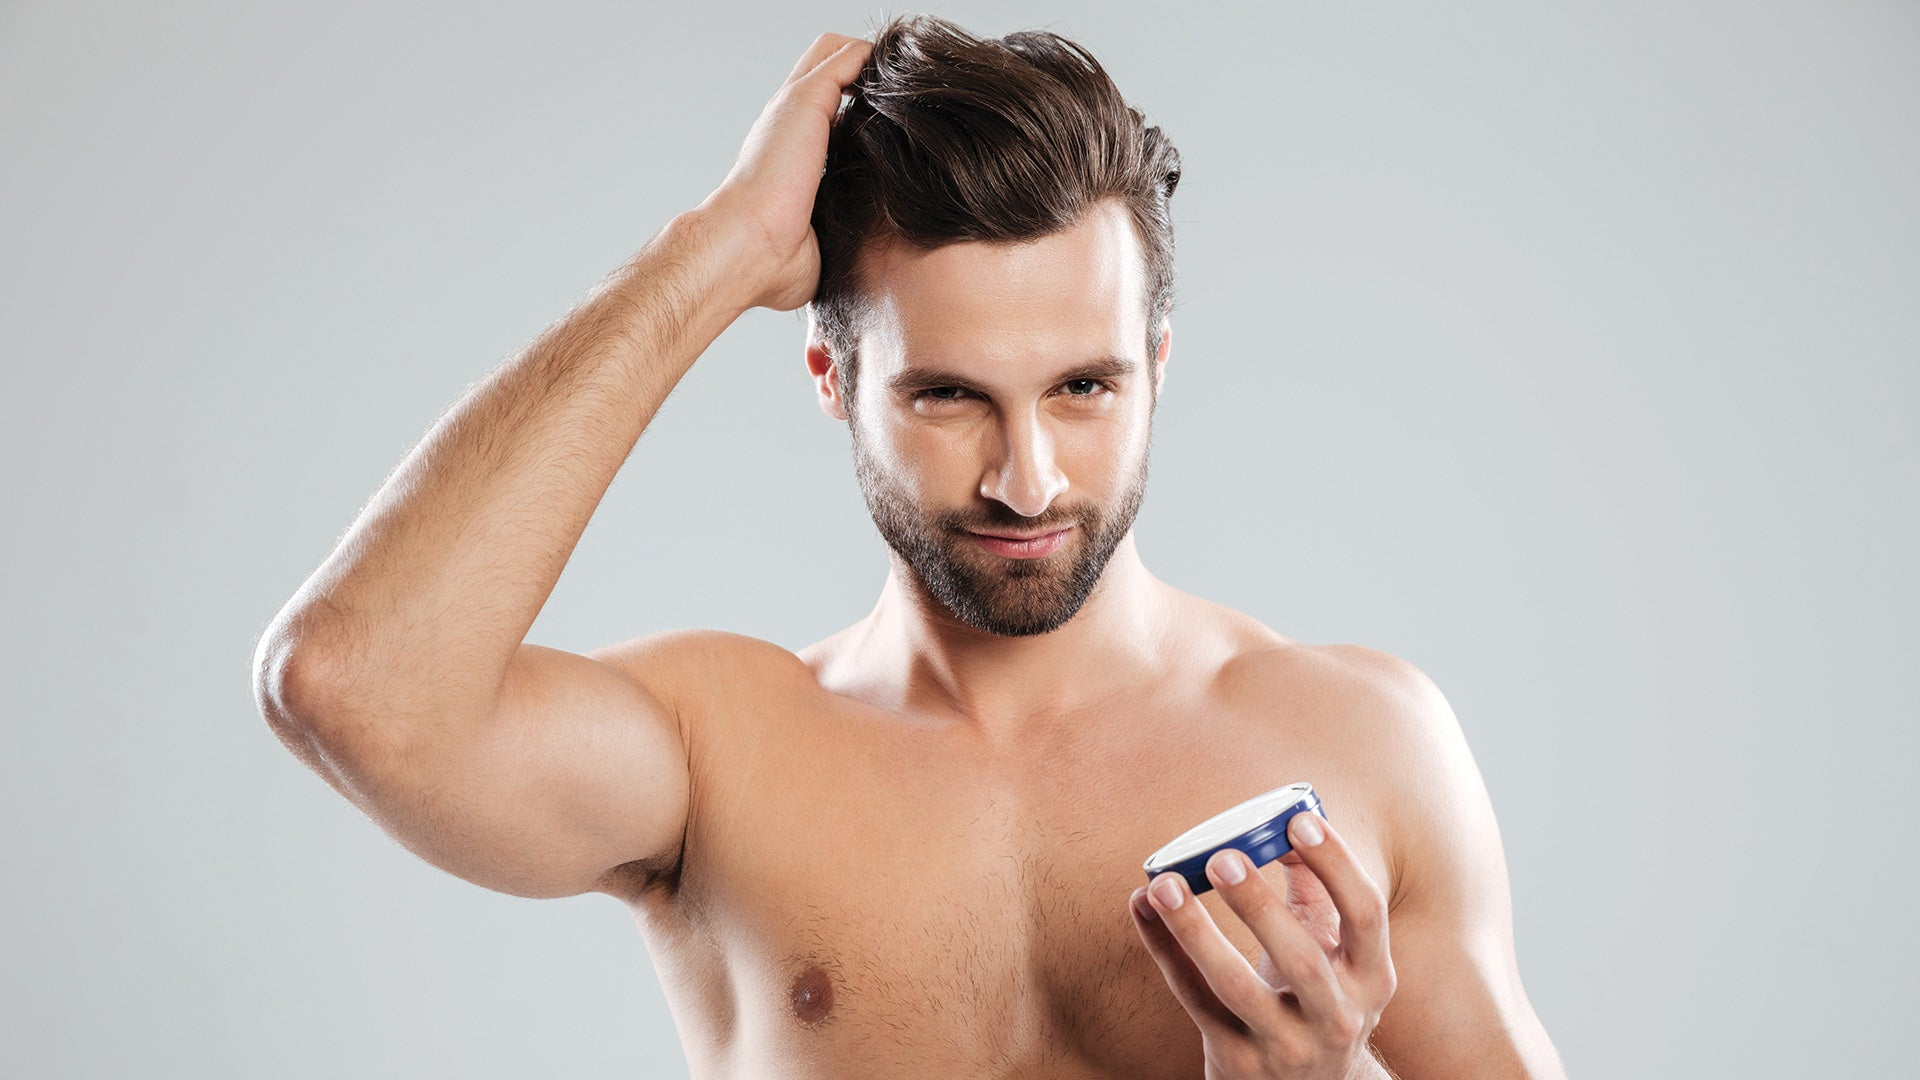 Hair Cream - Hair Care Products for Men